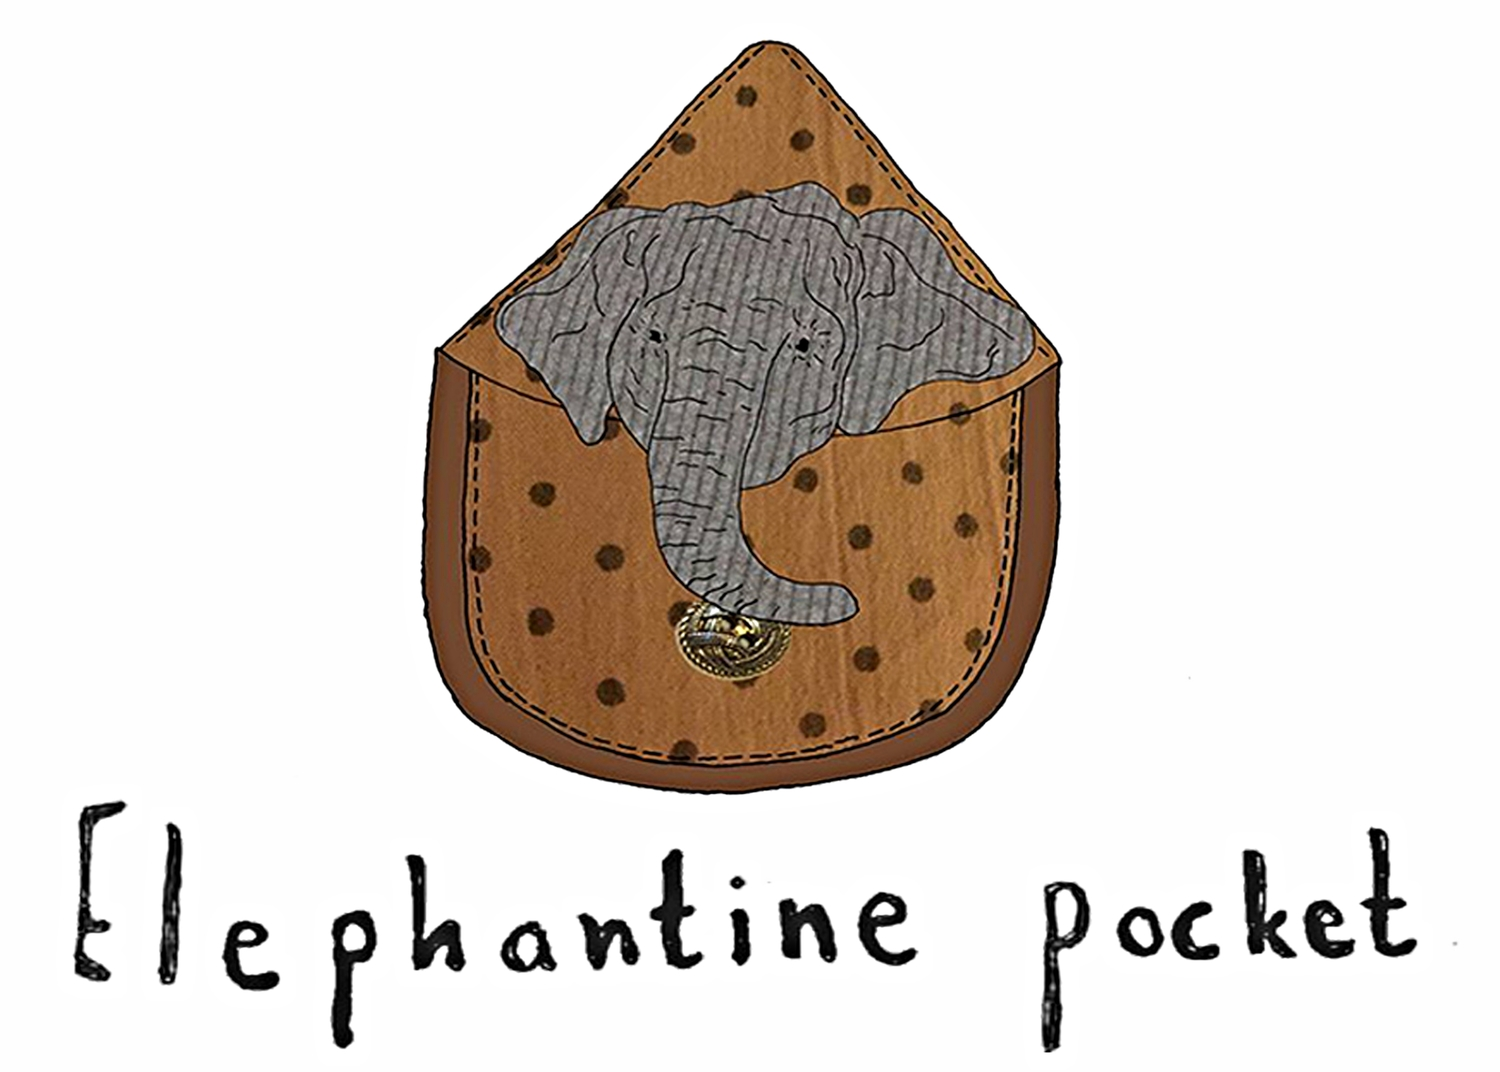 Elephantine Pocket